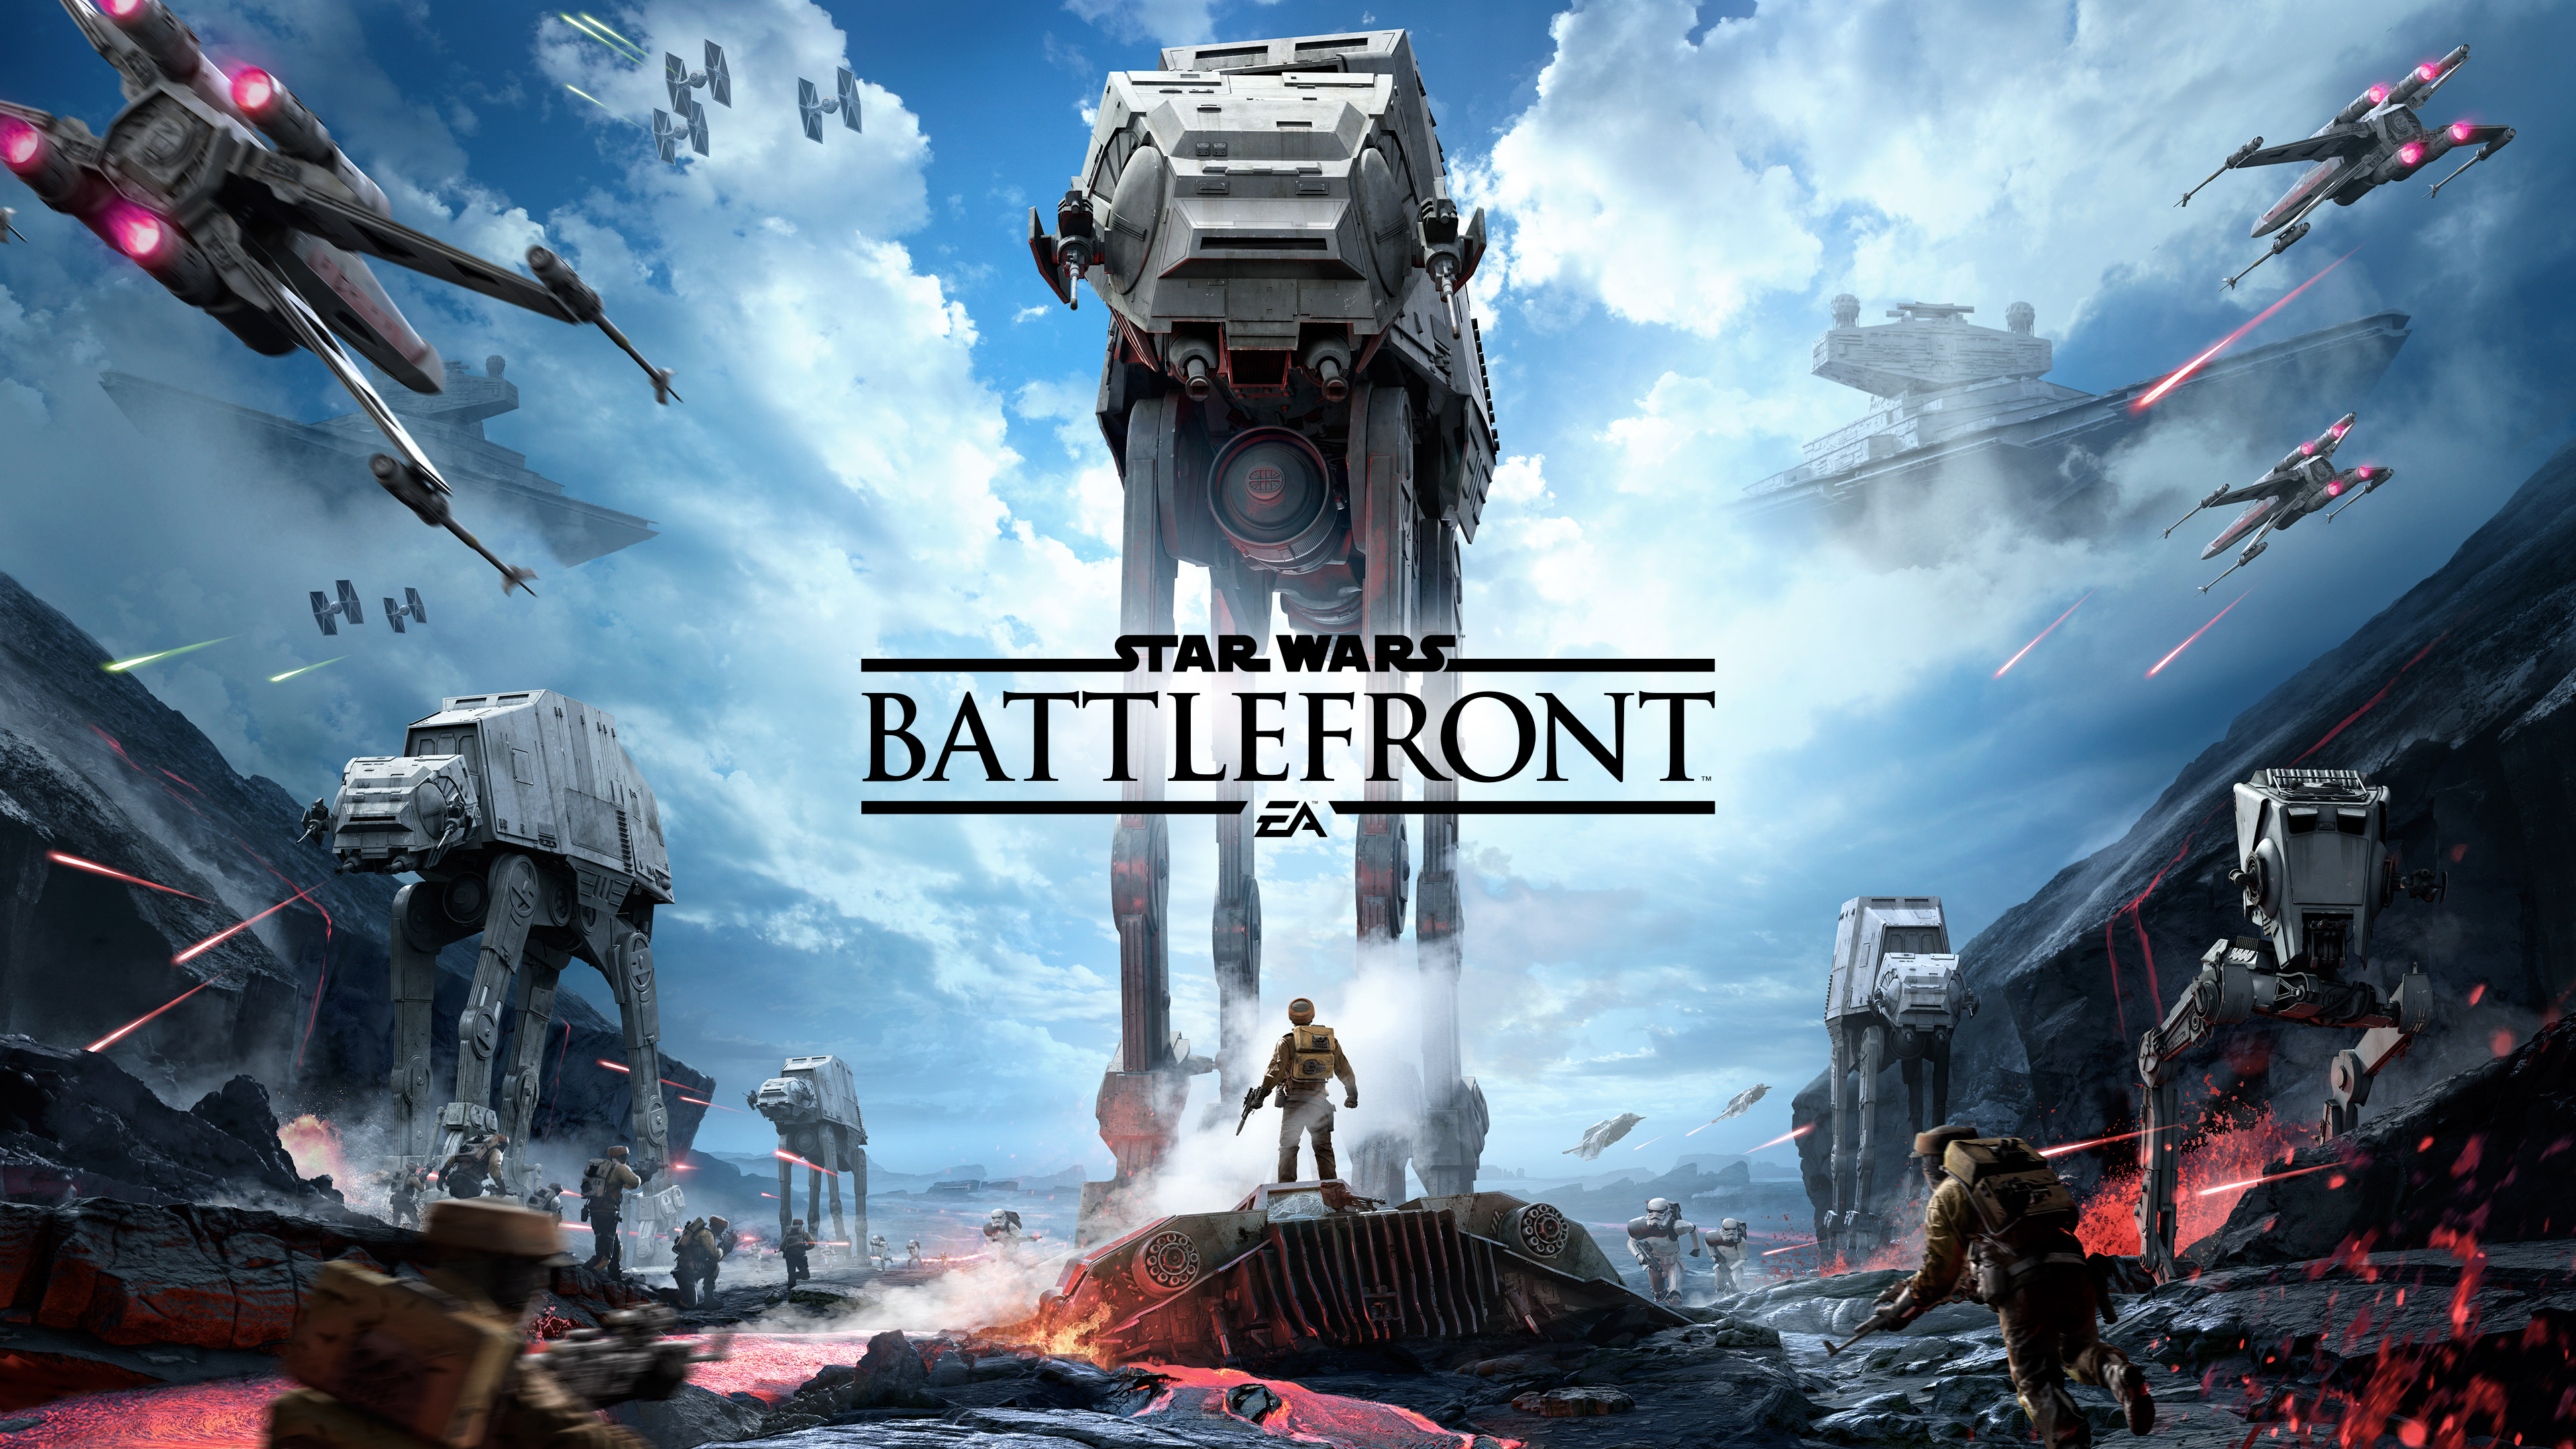 star wars™ battlefront™ wallpapers - star wars - official ea site